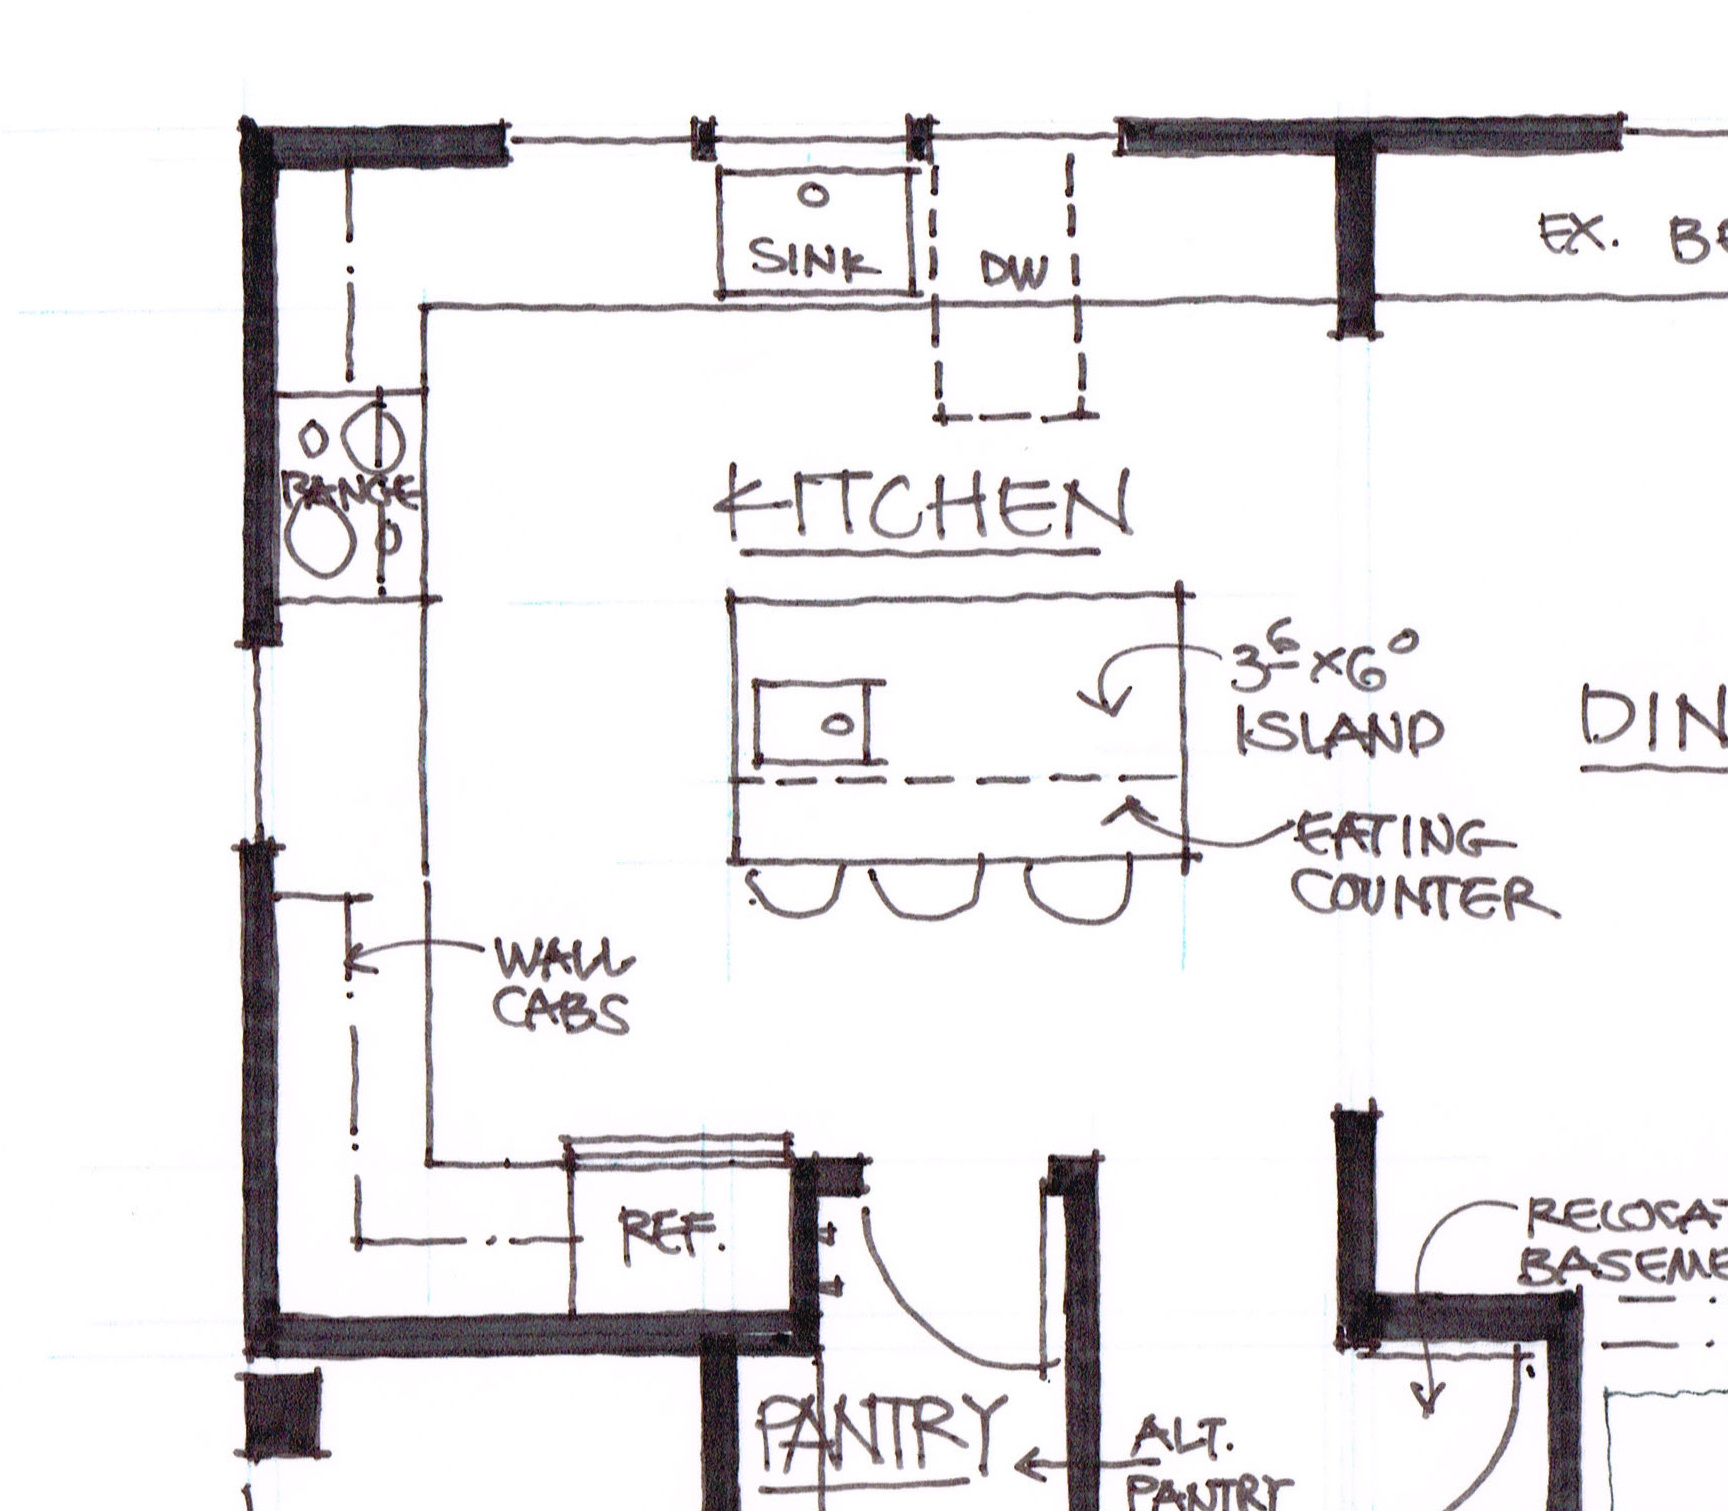 Kitchen Floor Plan kitchen floor plans with islands decor ideasdecor ideas. 15x15